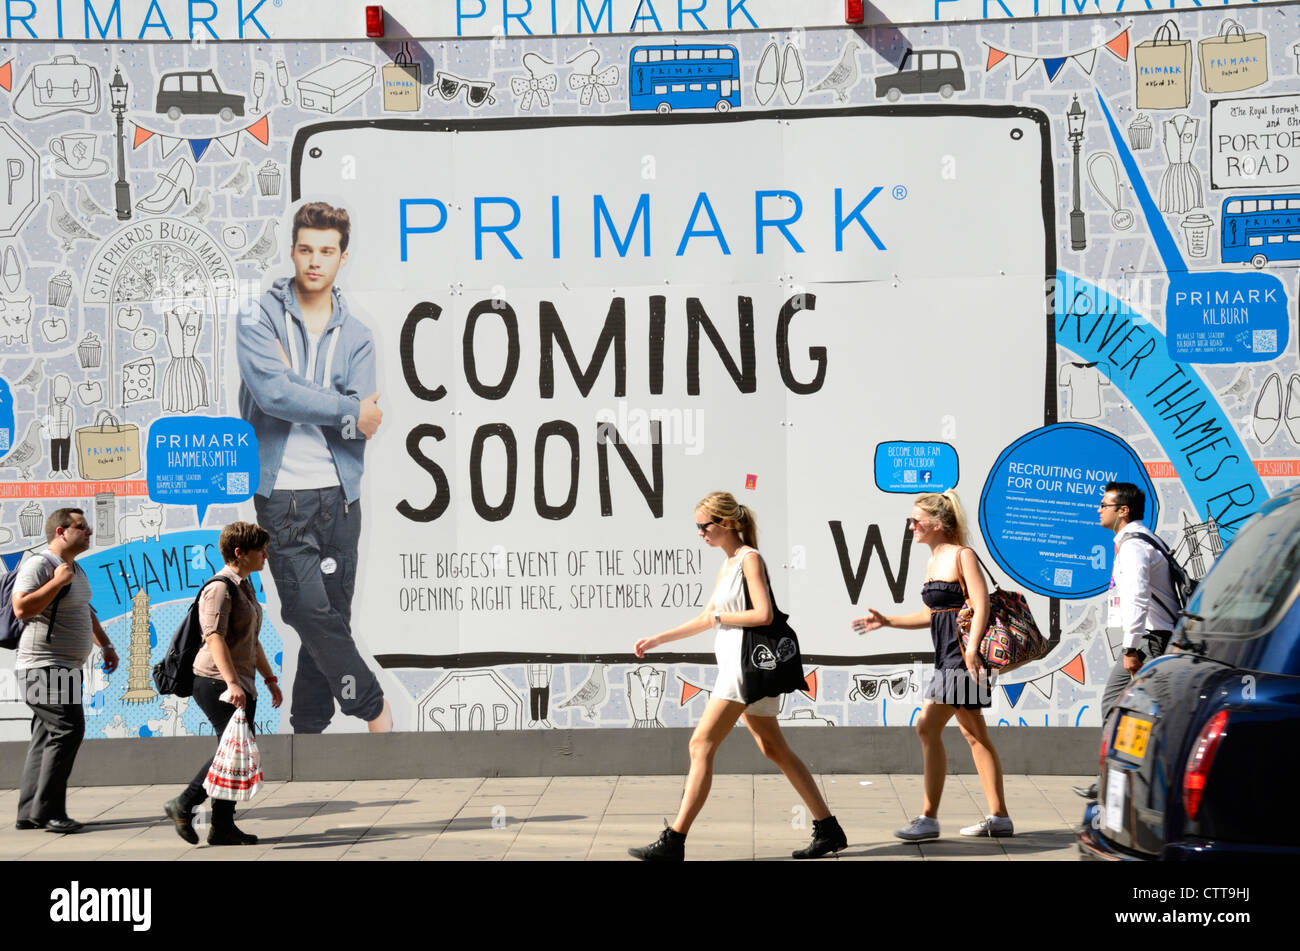 hoarding advertising a new primark clothes store near the. Black Bedroom Furniture Sets. Home Design Ideas